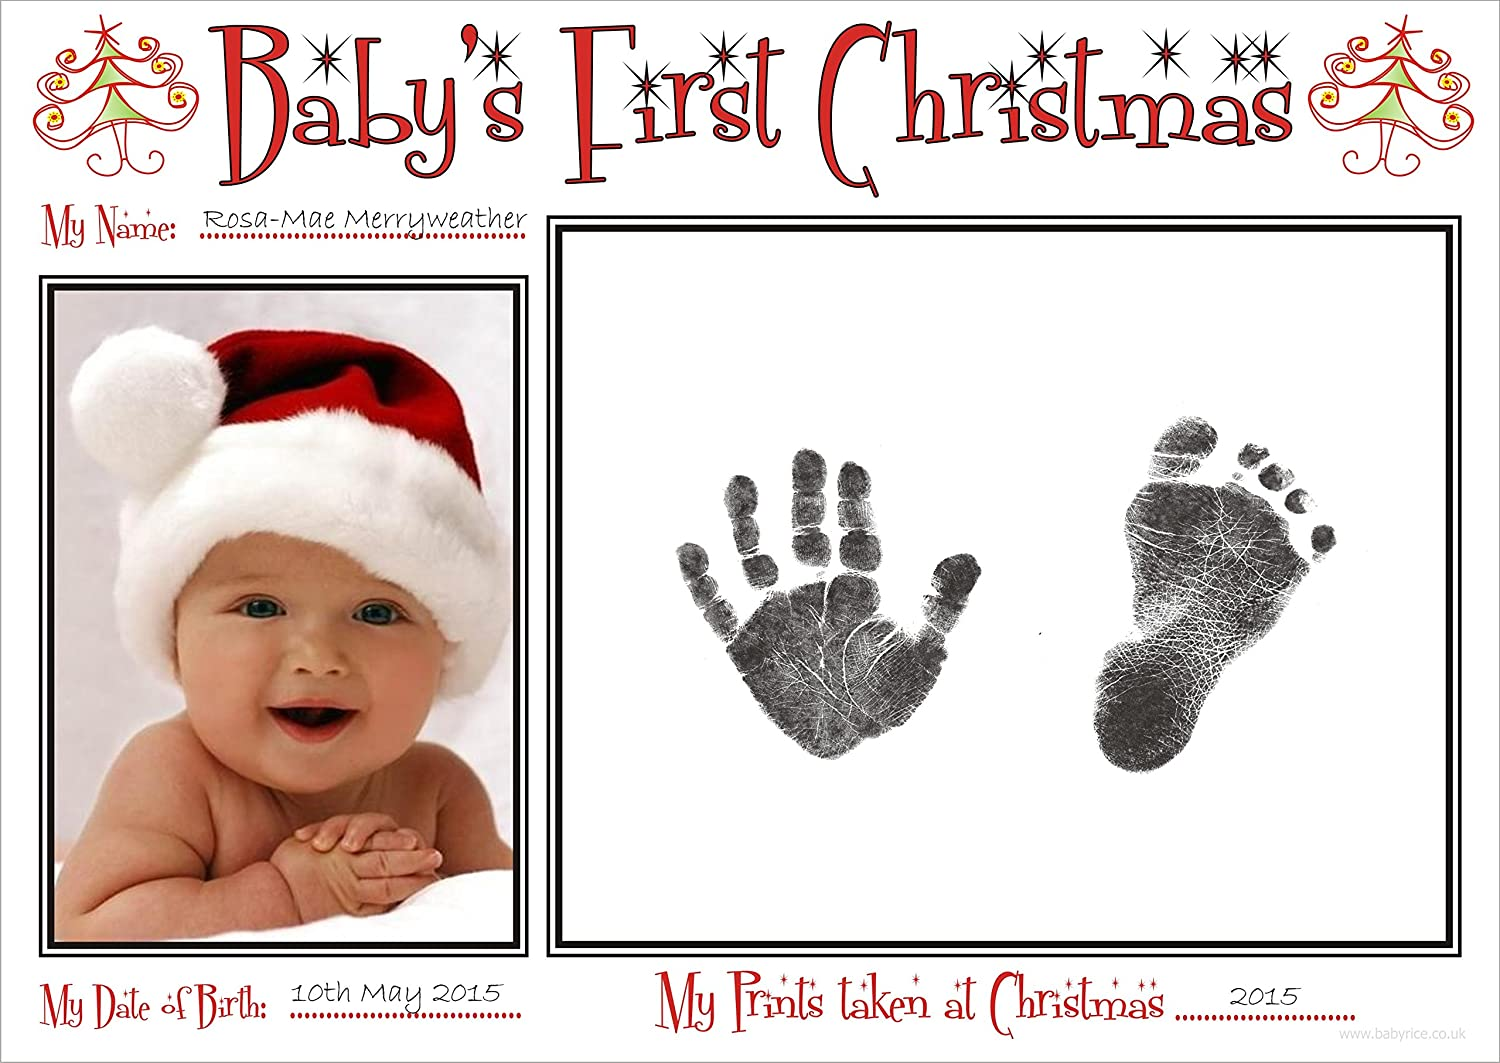 BabyRice New Baby's First Christmas Handprint and Footprint Kit/Boy Girl Unisex Babys Prints